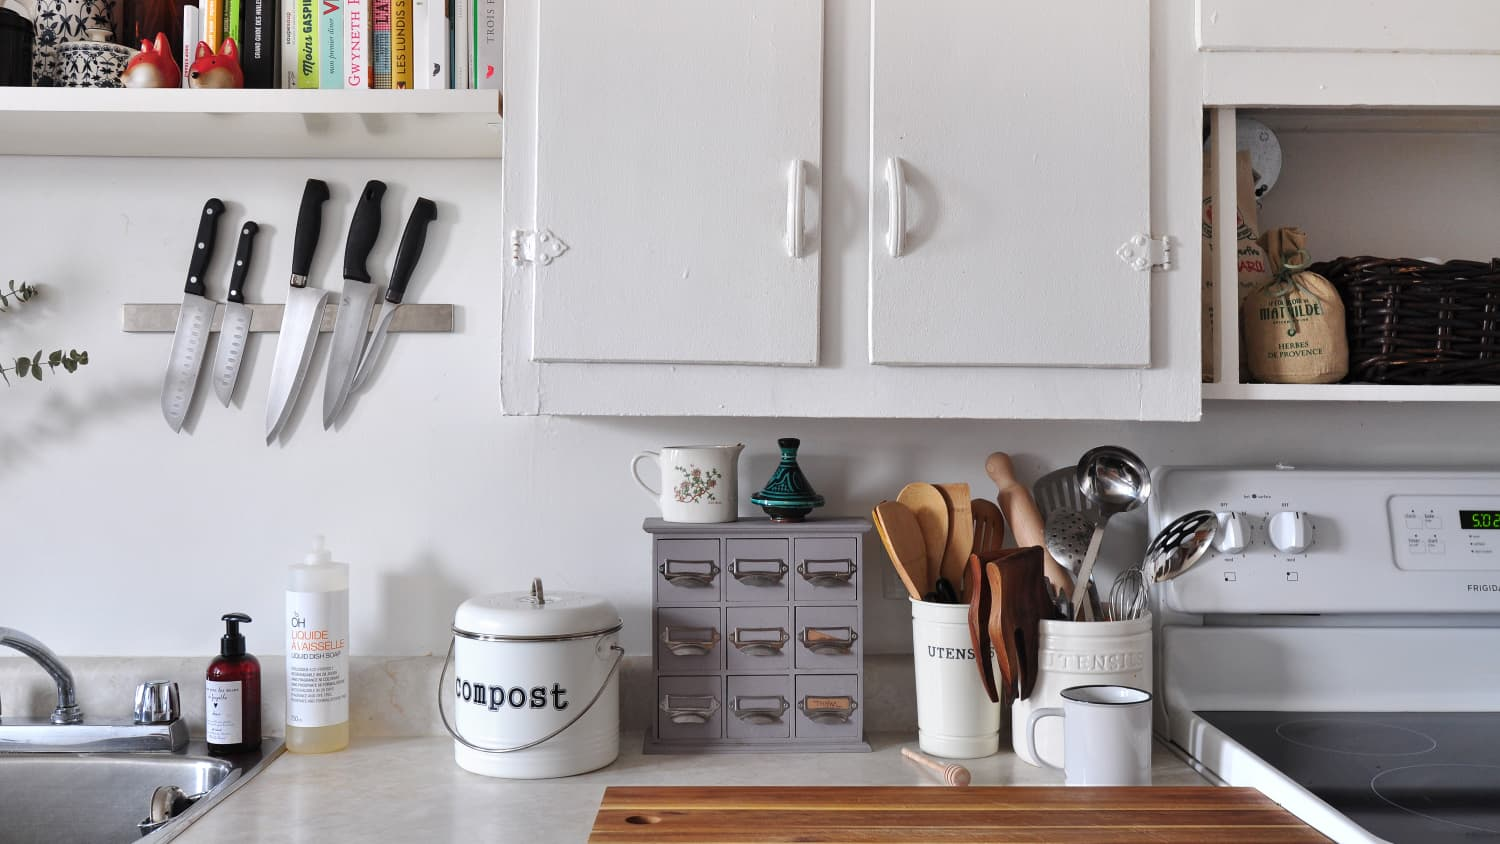 How do you store small kitchen gadgets?